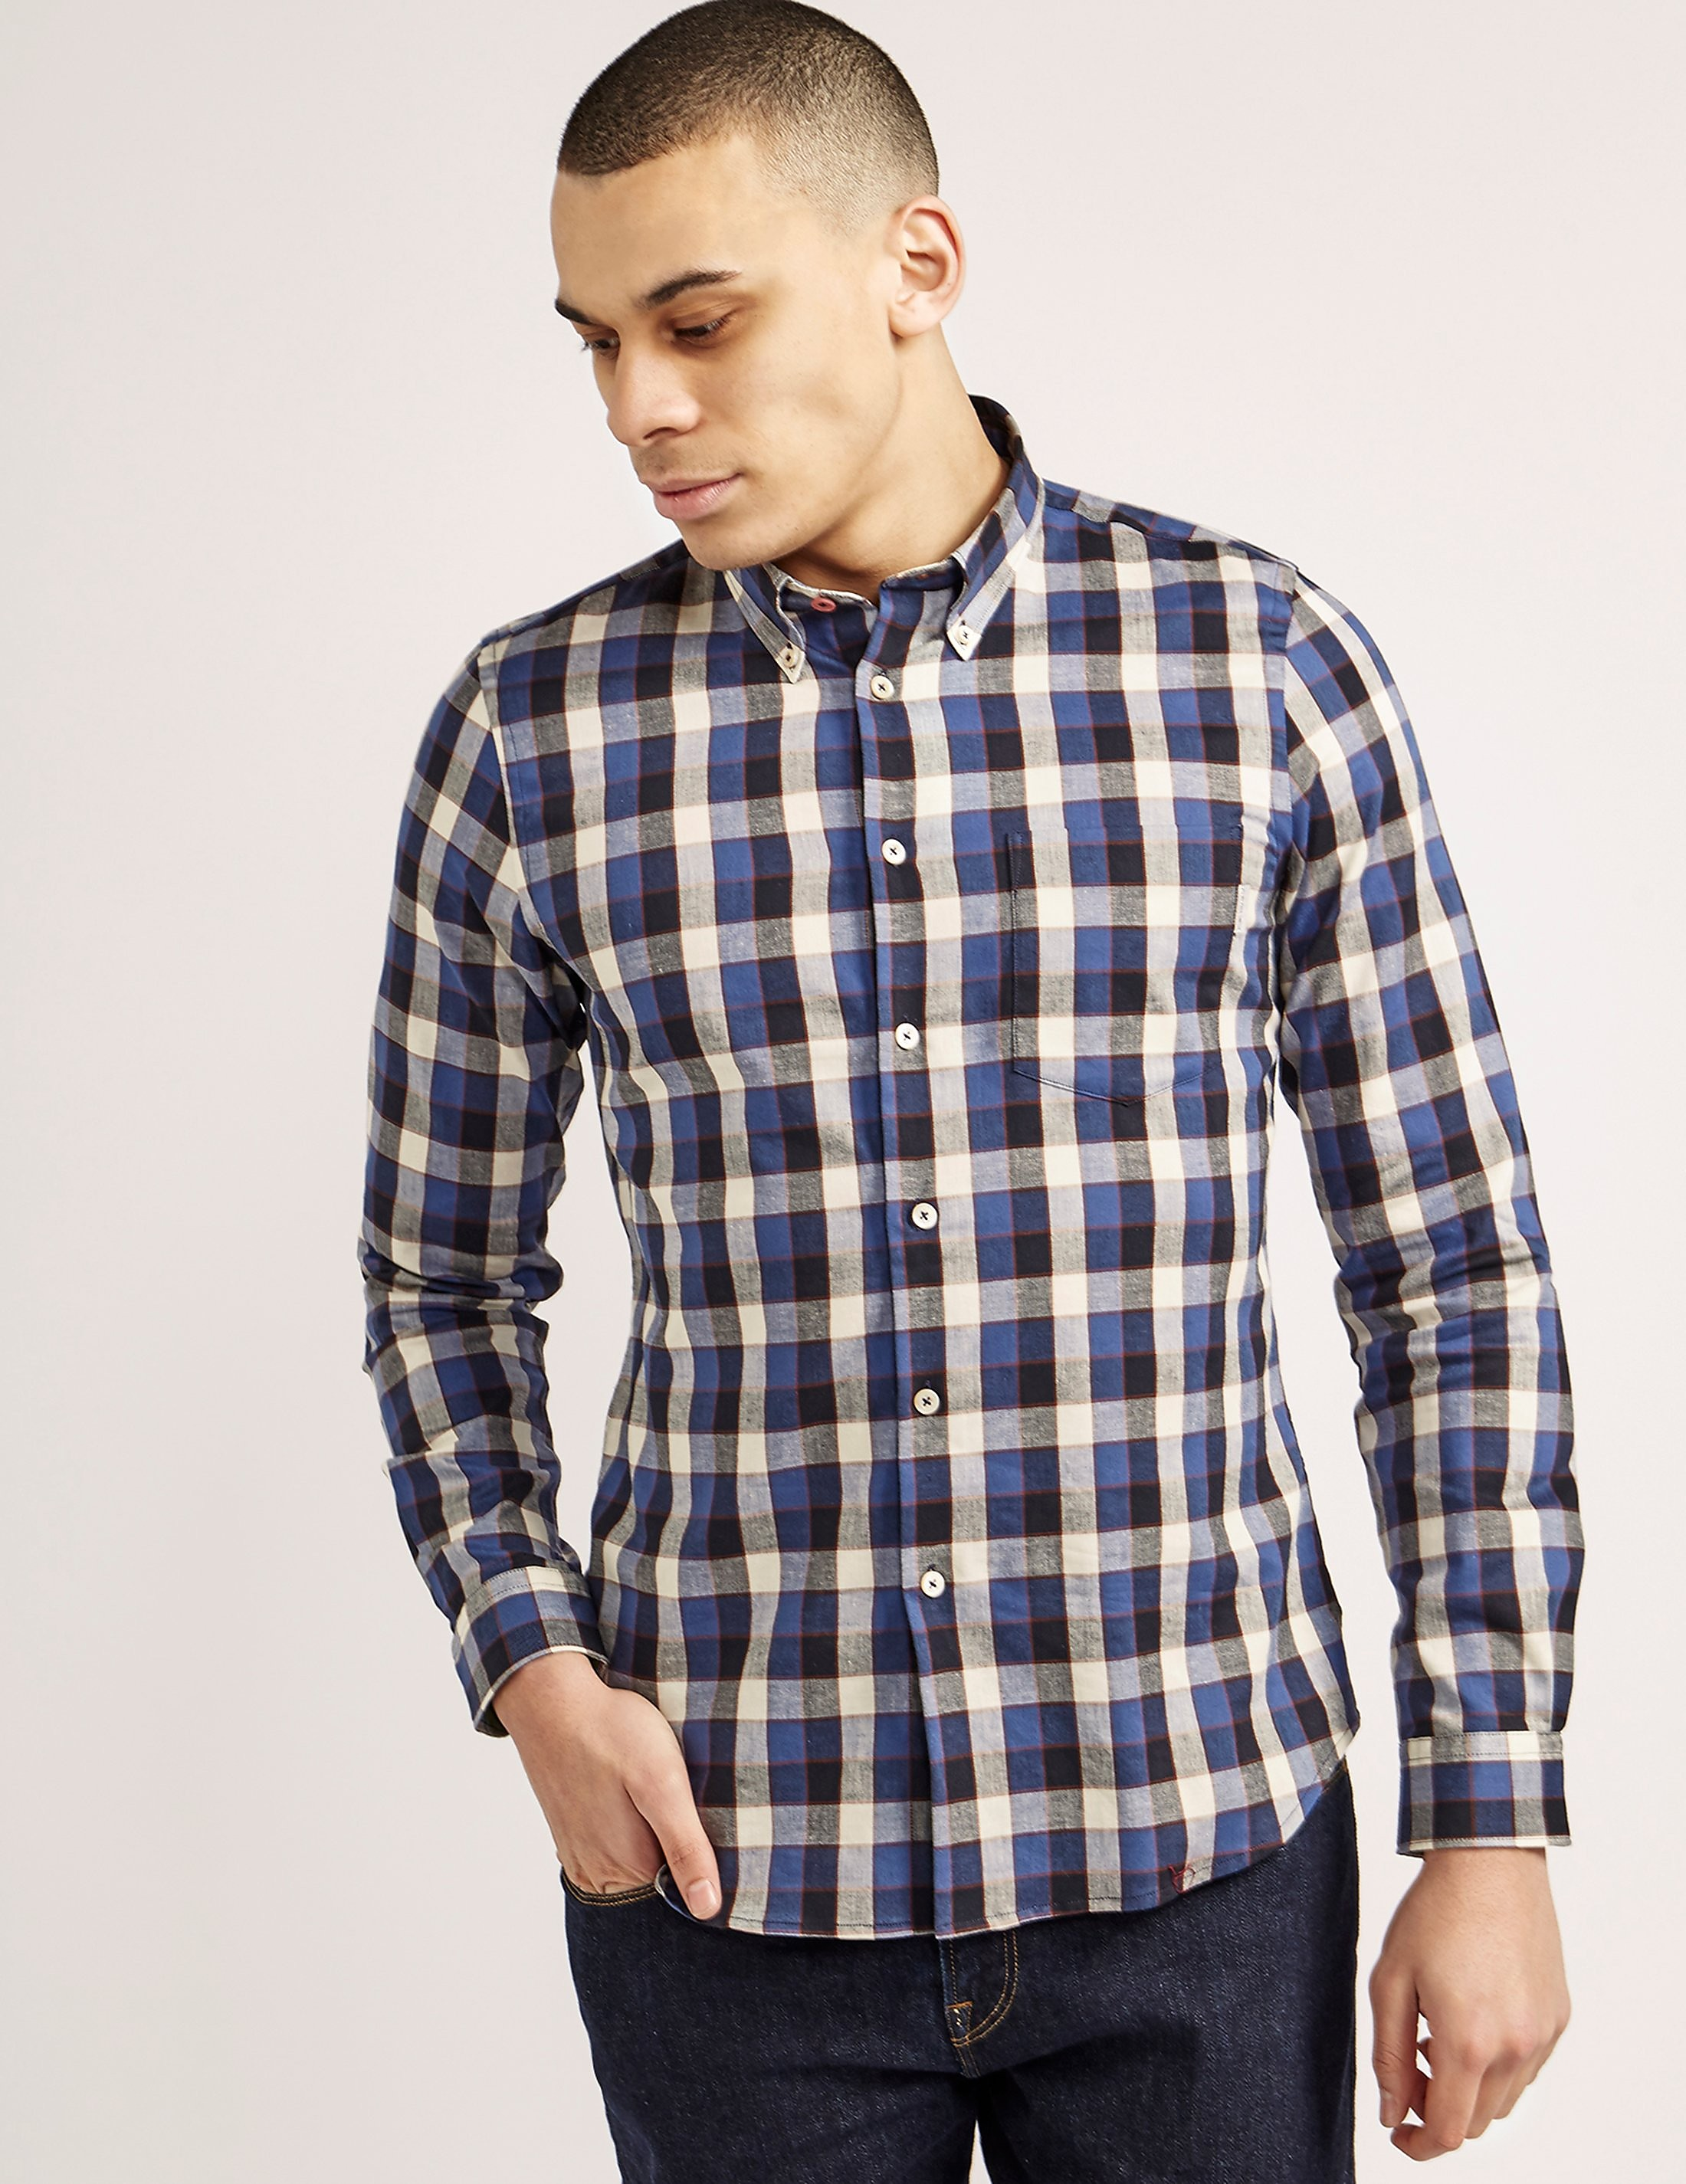 Paul Smith Plaid Shirt